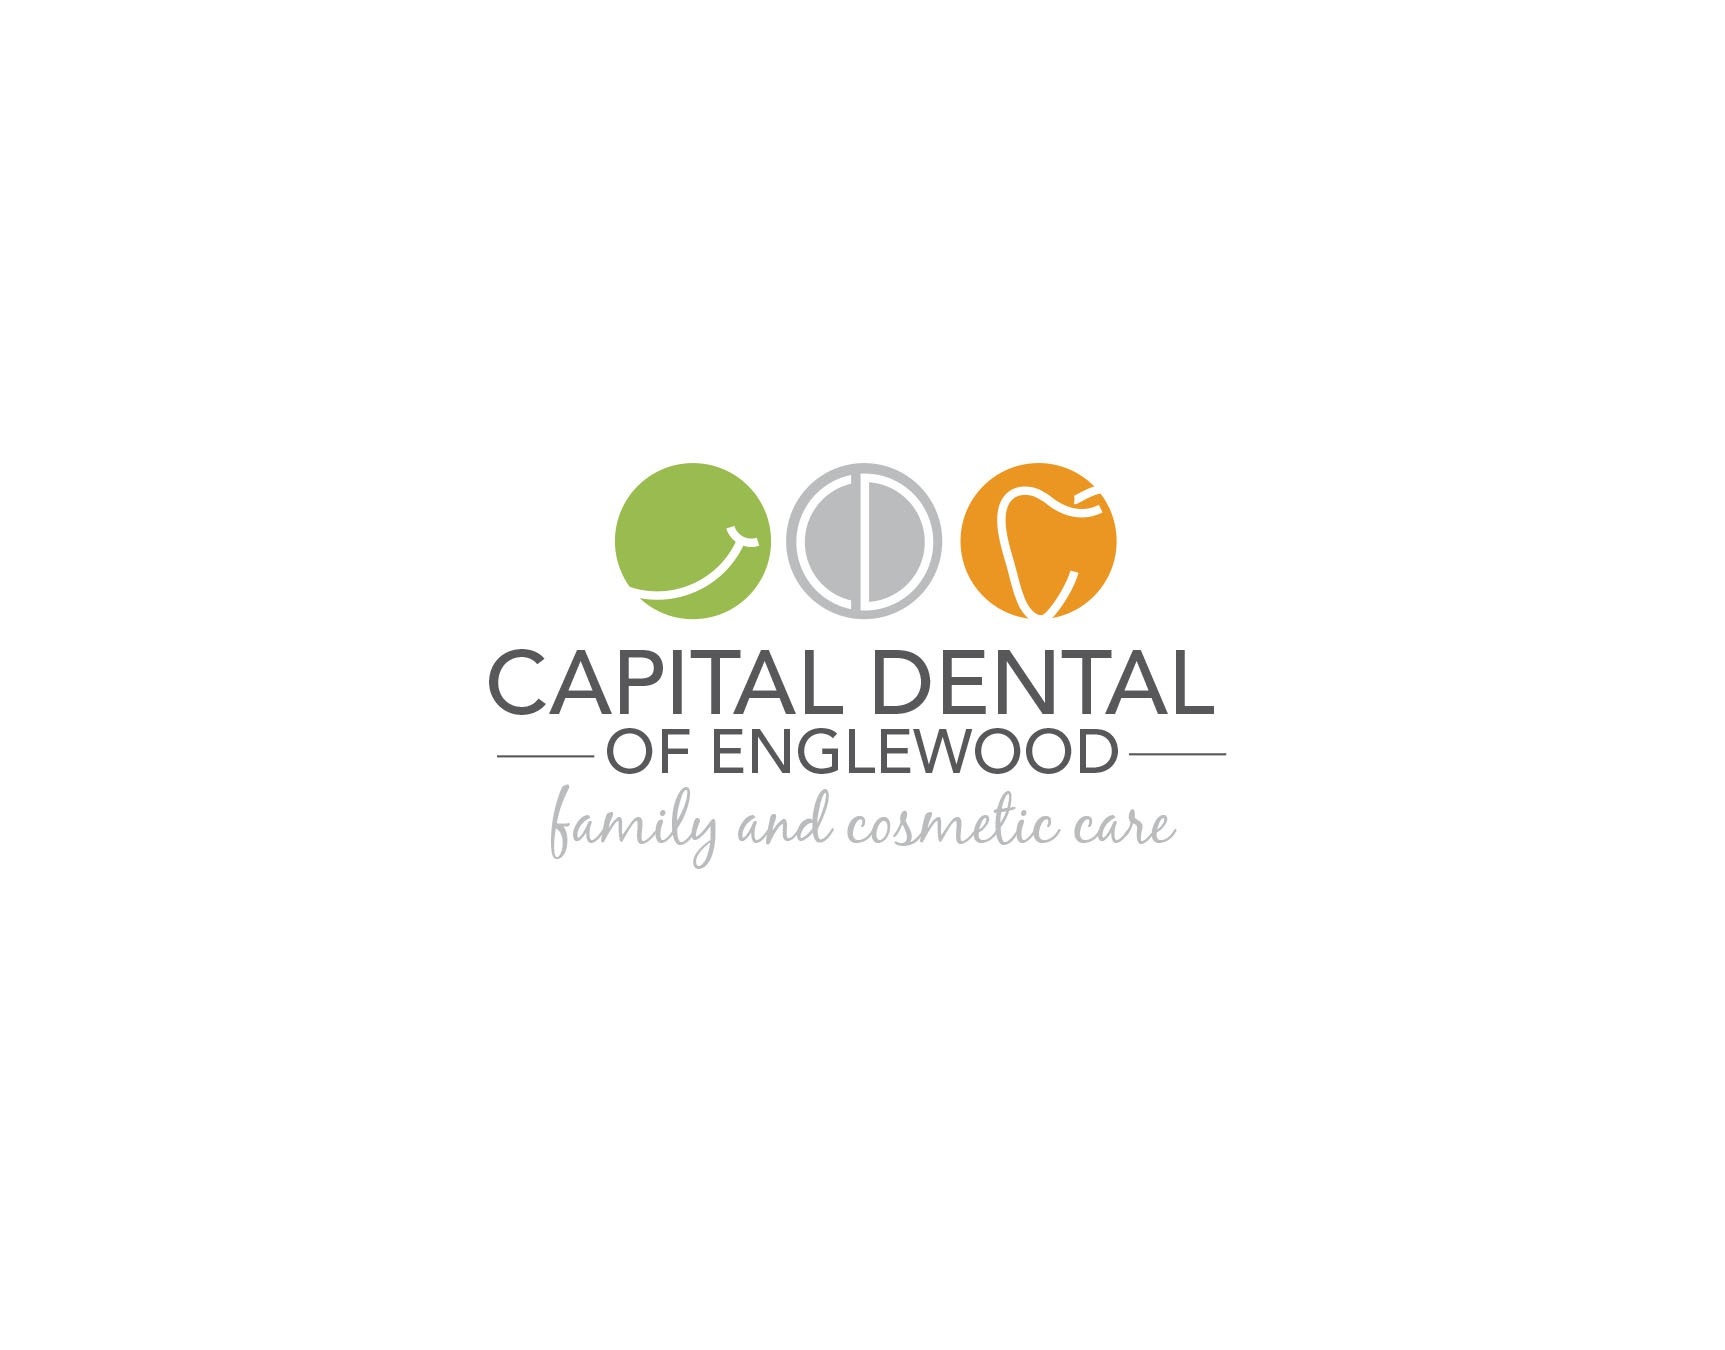 Help Capital Dental of Englewood with a new logo